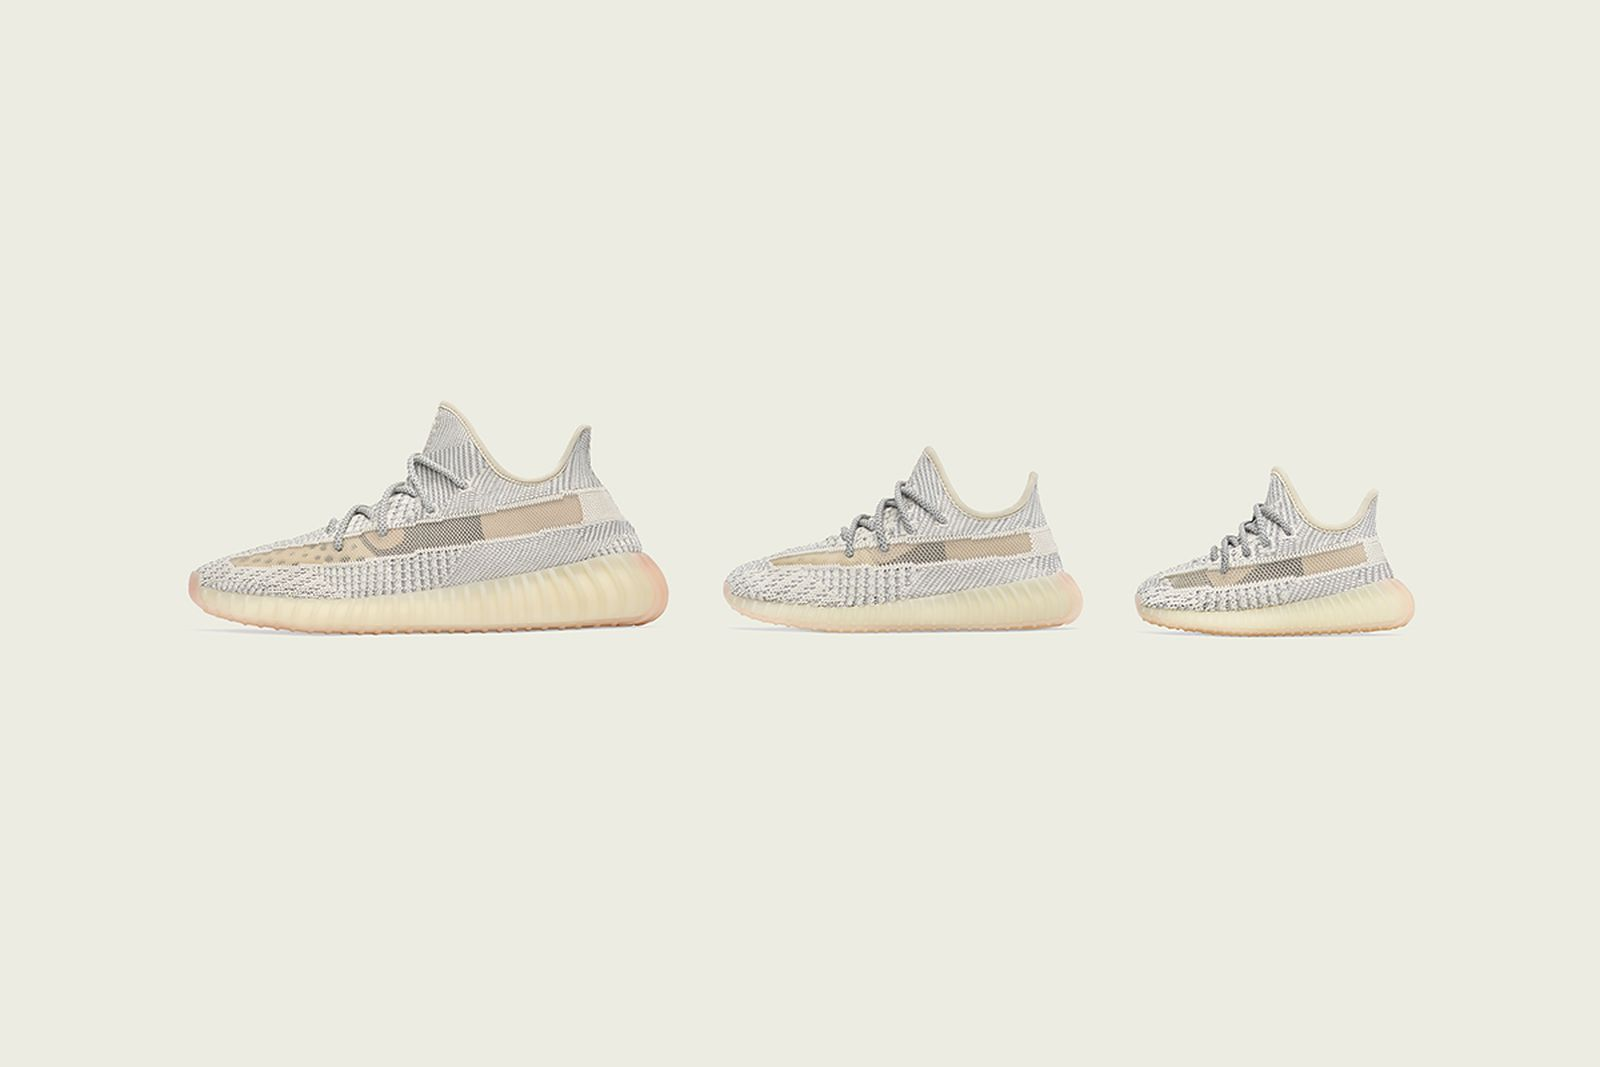 adidas yeezy boost 350 v2 lundmark release date price kanye west